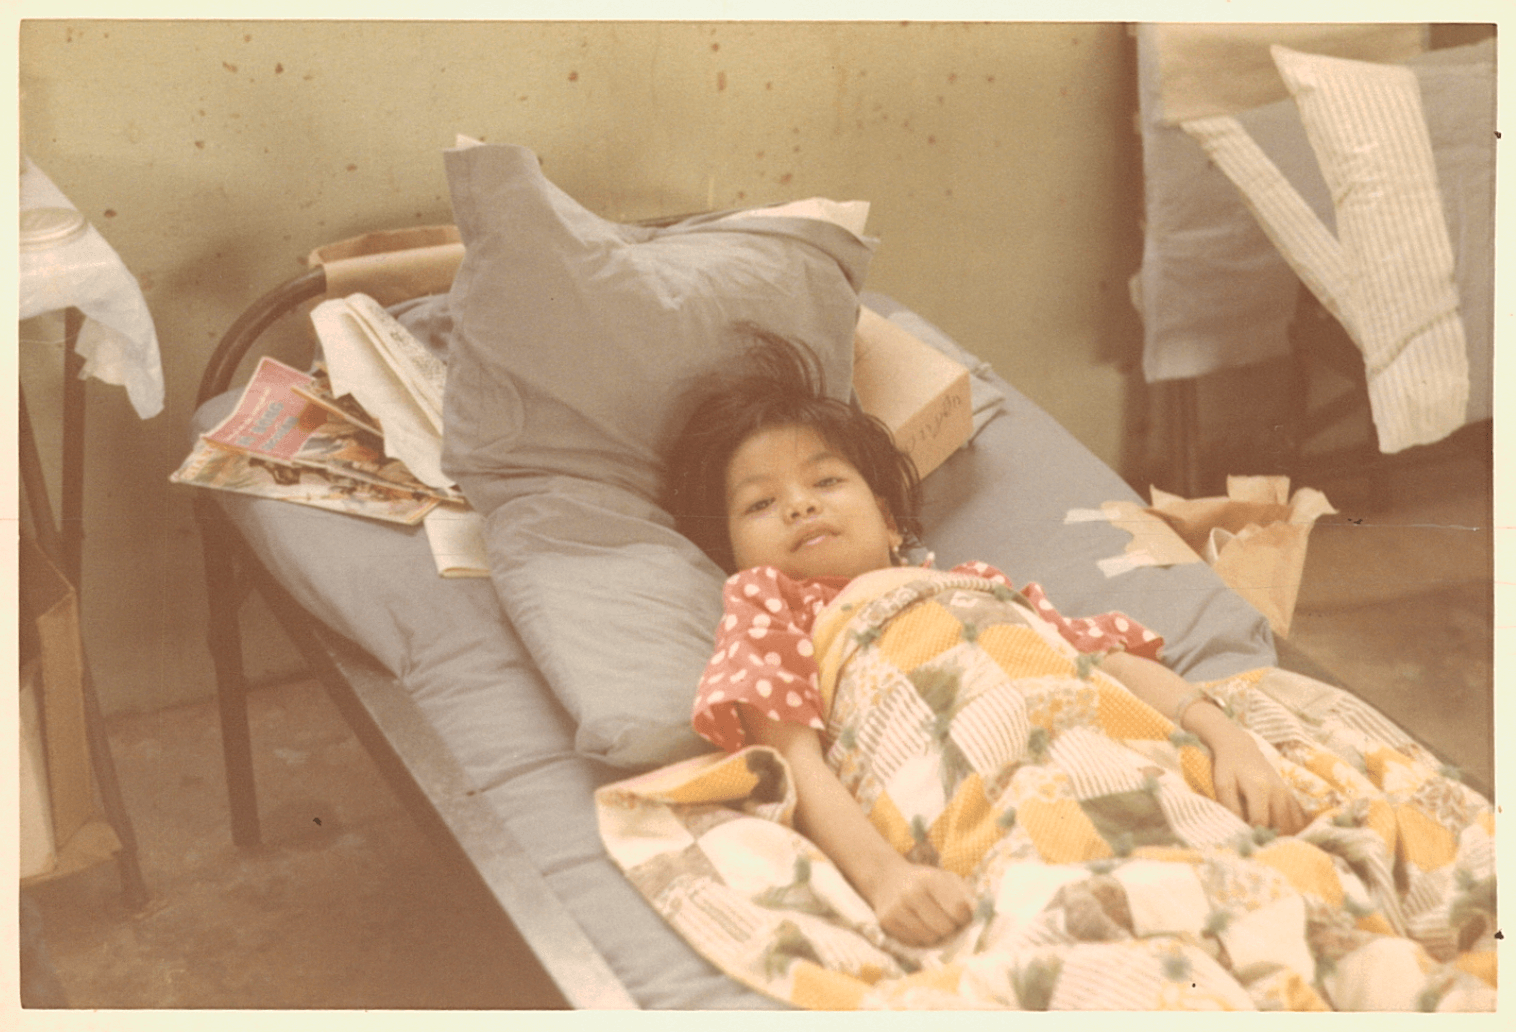 A young Asian child in her hospital bed, under a colorful quilt.